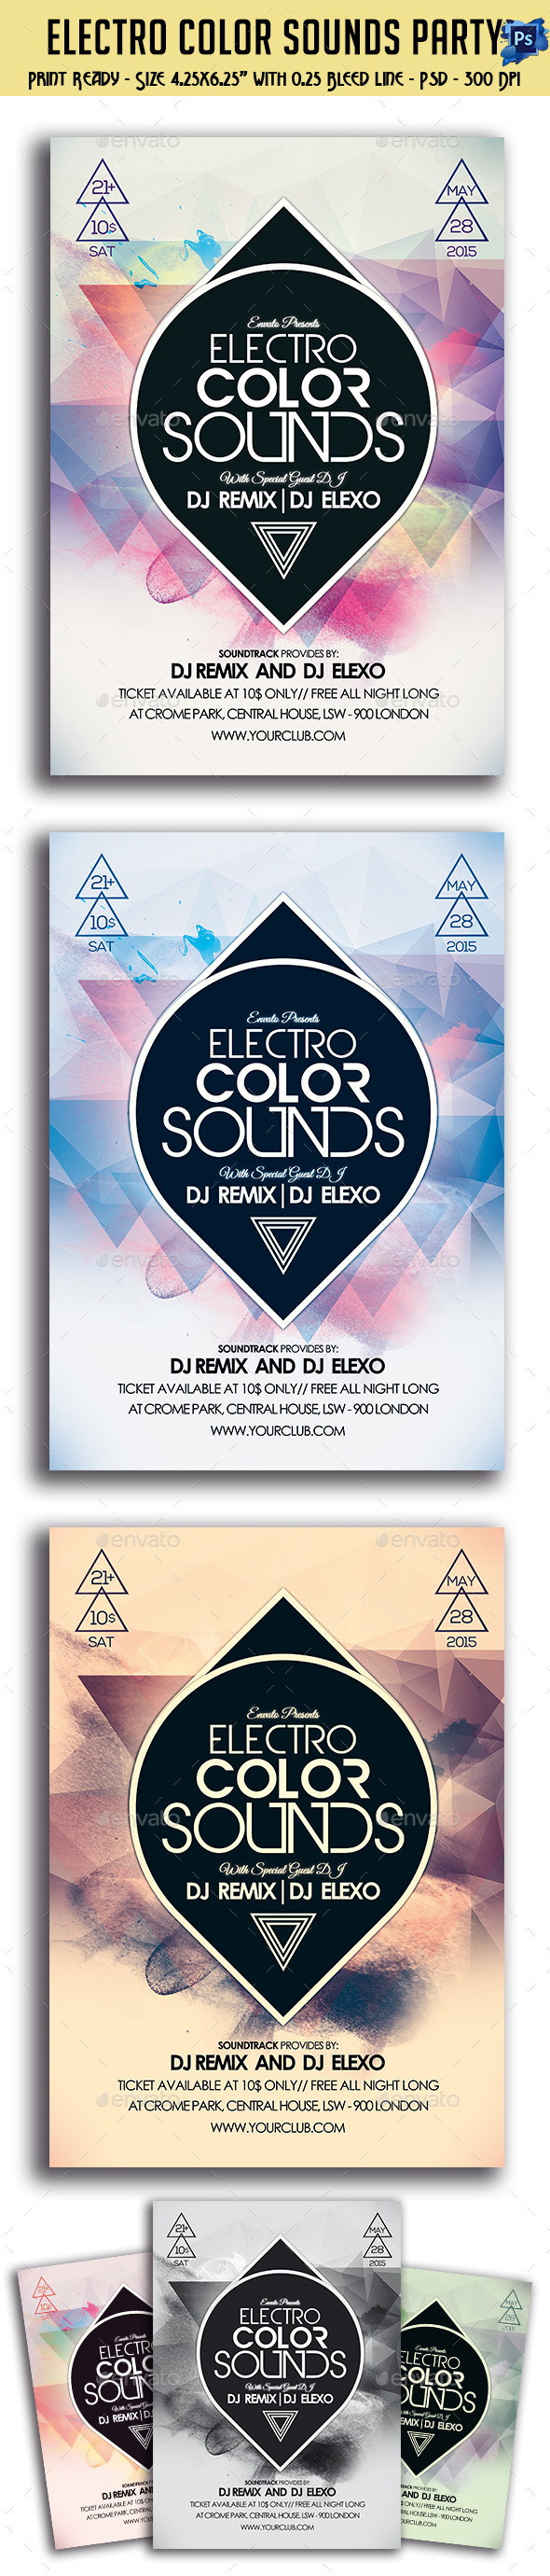 GraphicRiver Electro Color Sounds Party Flyer 11157162